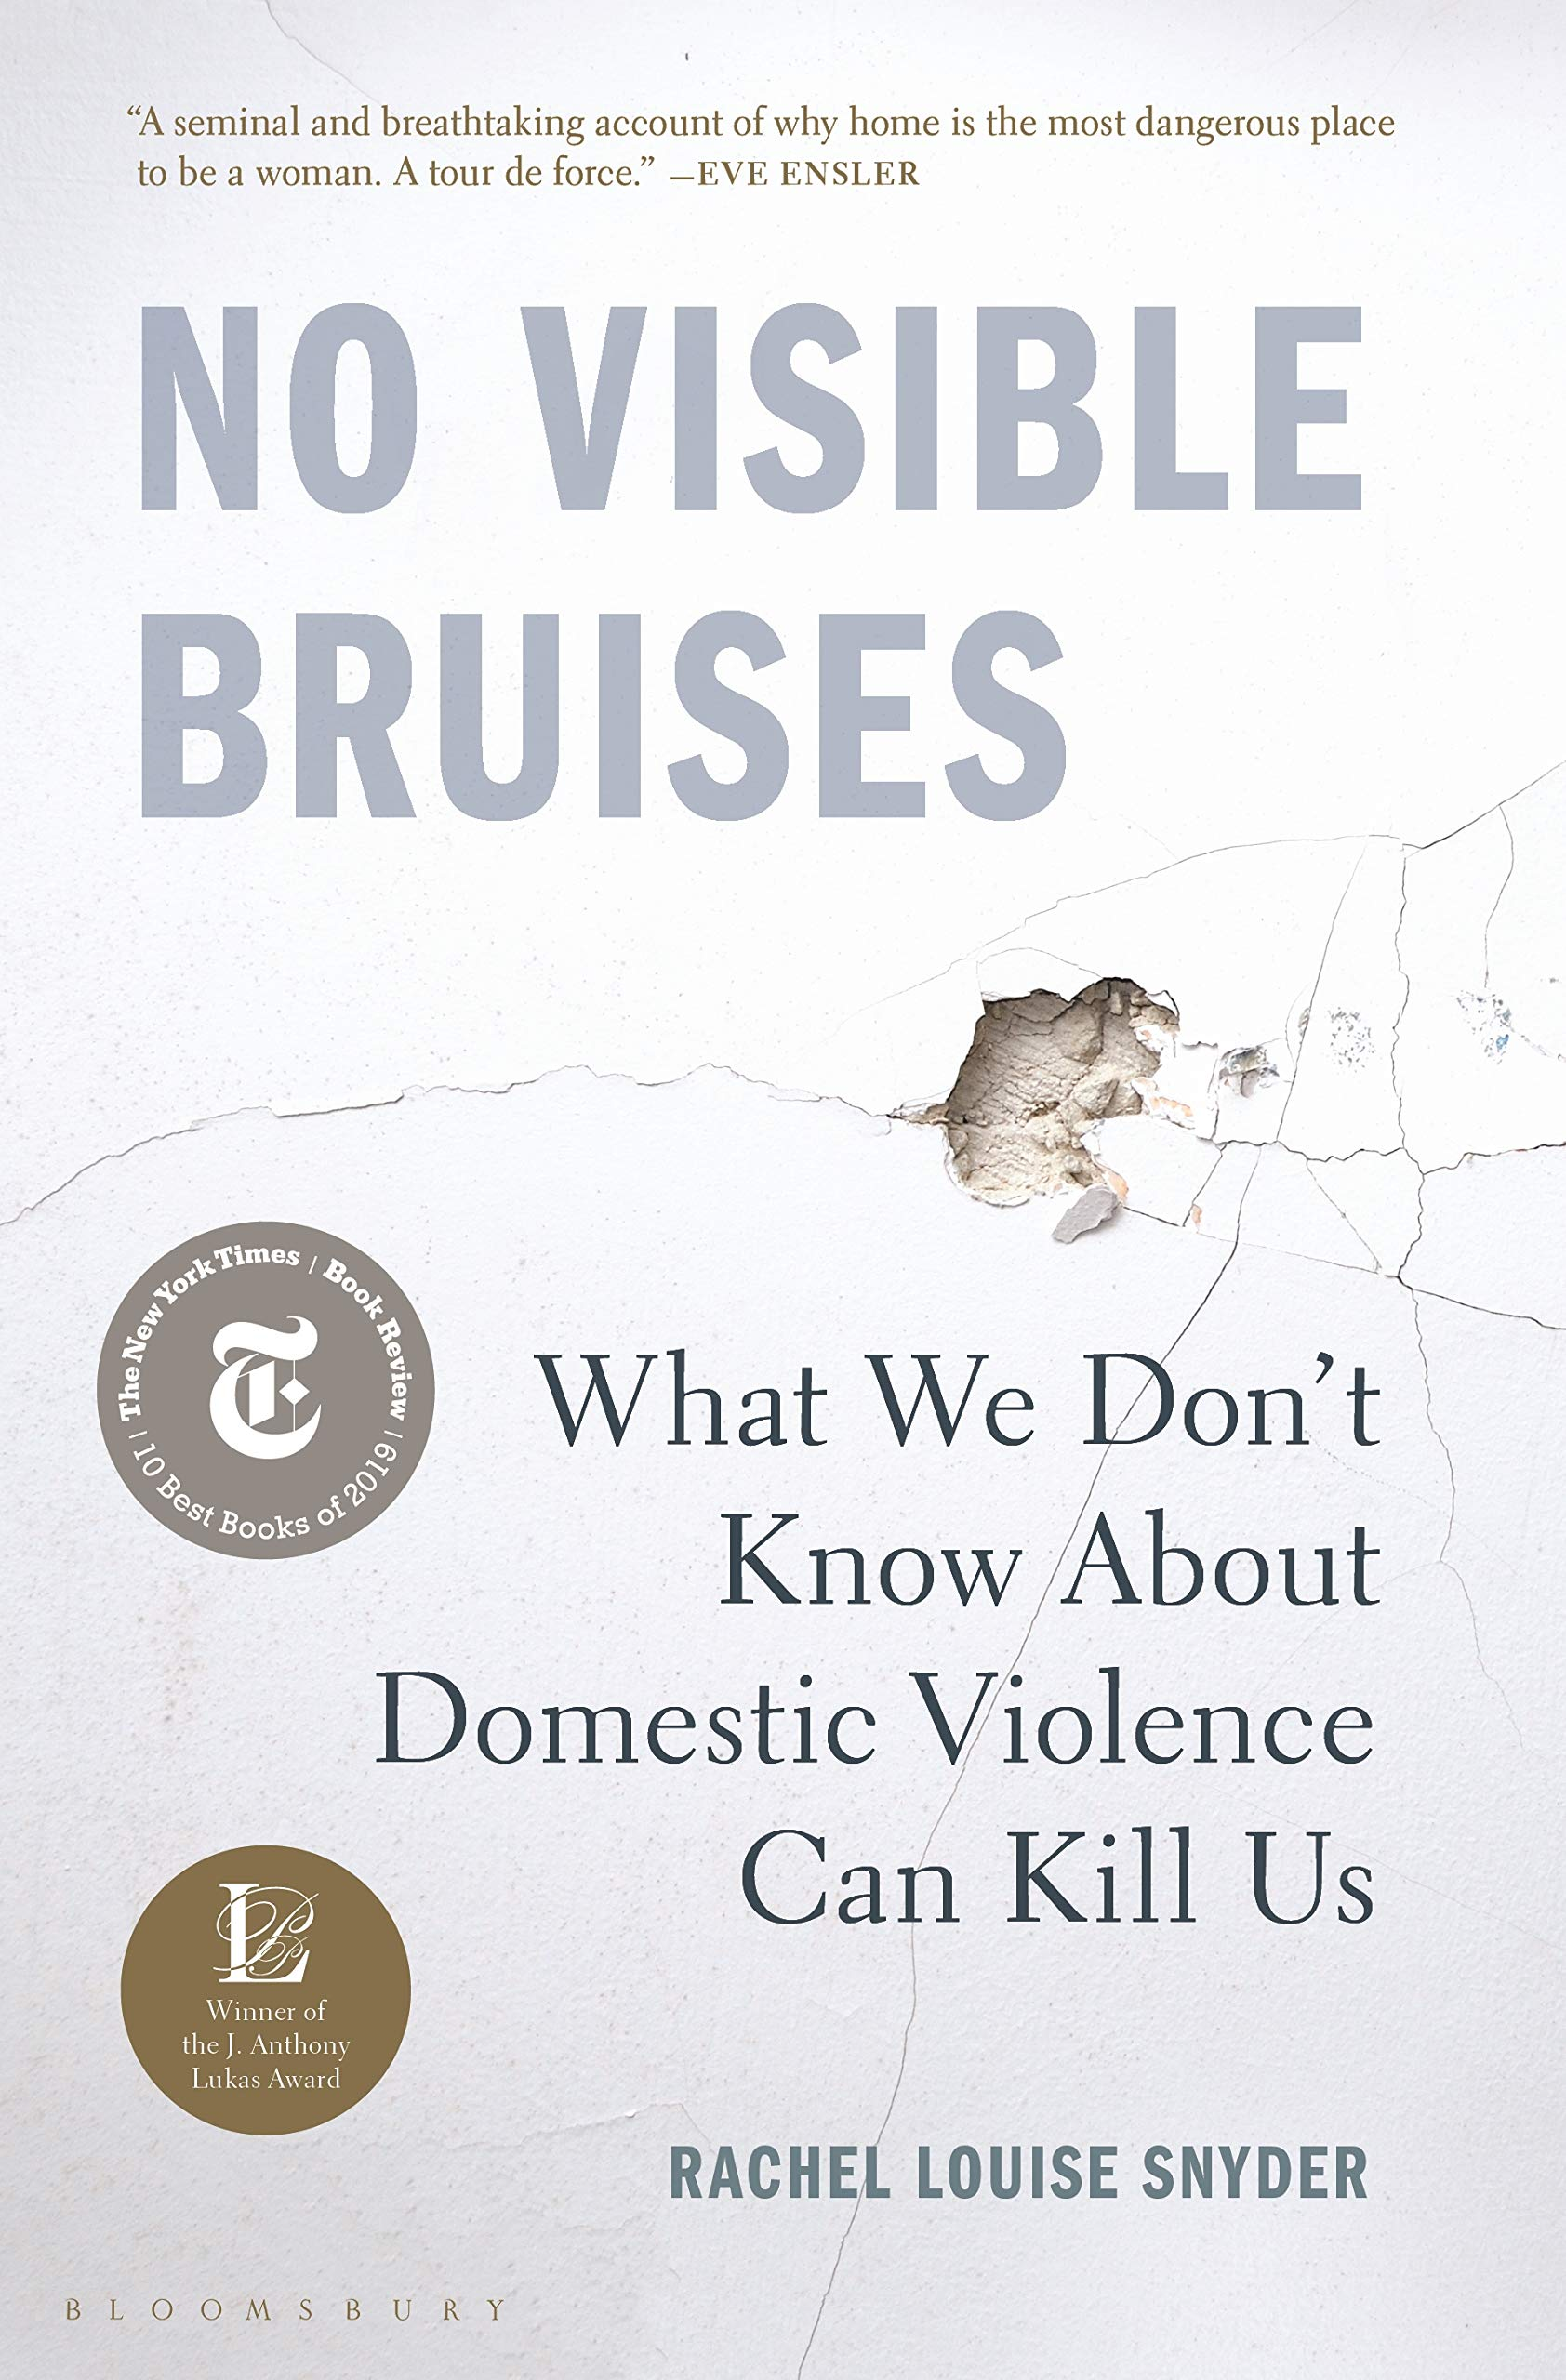 No Visible Bruises: What We Don't Know About Domestic Violence Can Kill Us by Rachel Louise Snyder (Bloomsbury)